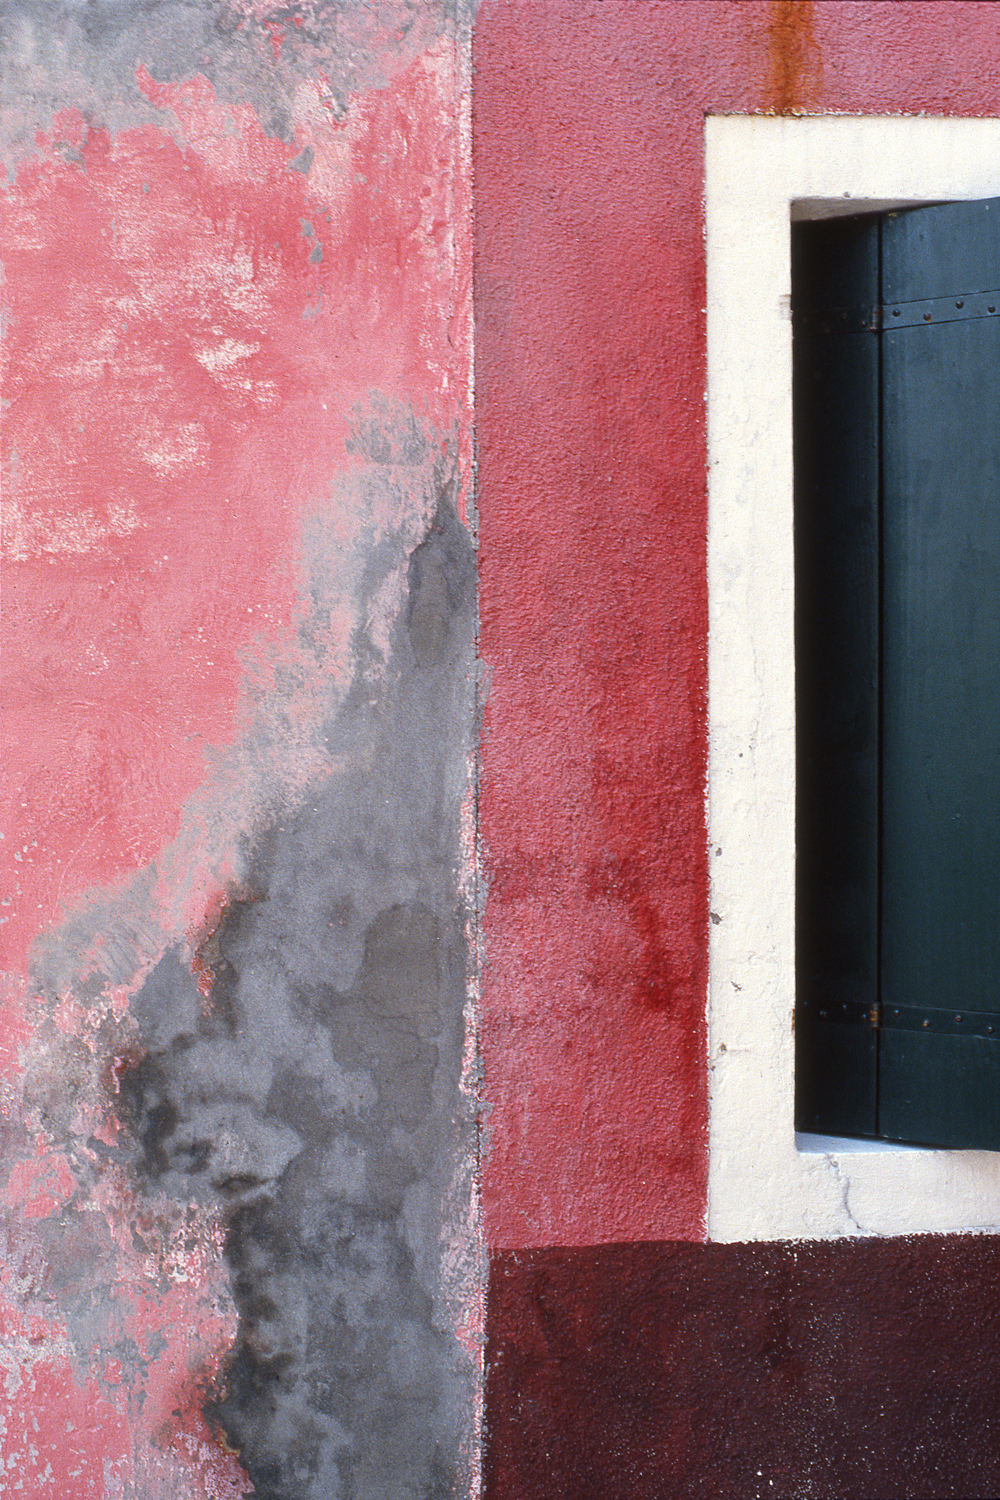 Pink and Grey Wall, Burano Italy, 1978 , Cibachrome Print, 24 x 16cm, Edition of 10.                            Exhibition:  Burano Colour Works , Australian Centre for Photography, Sydney; Solander Gallery, Canberra; Wagga Wagga City Art Gallery, Wagga Wagga, 1979.